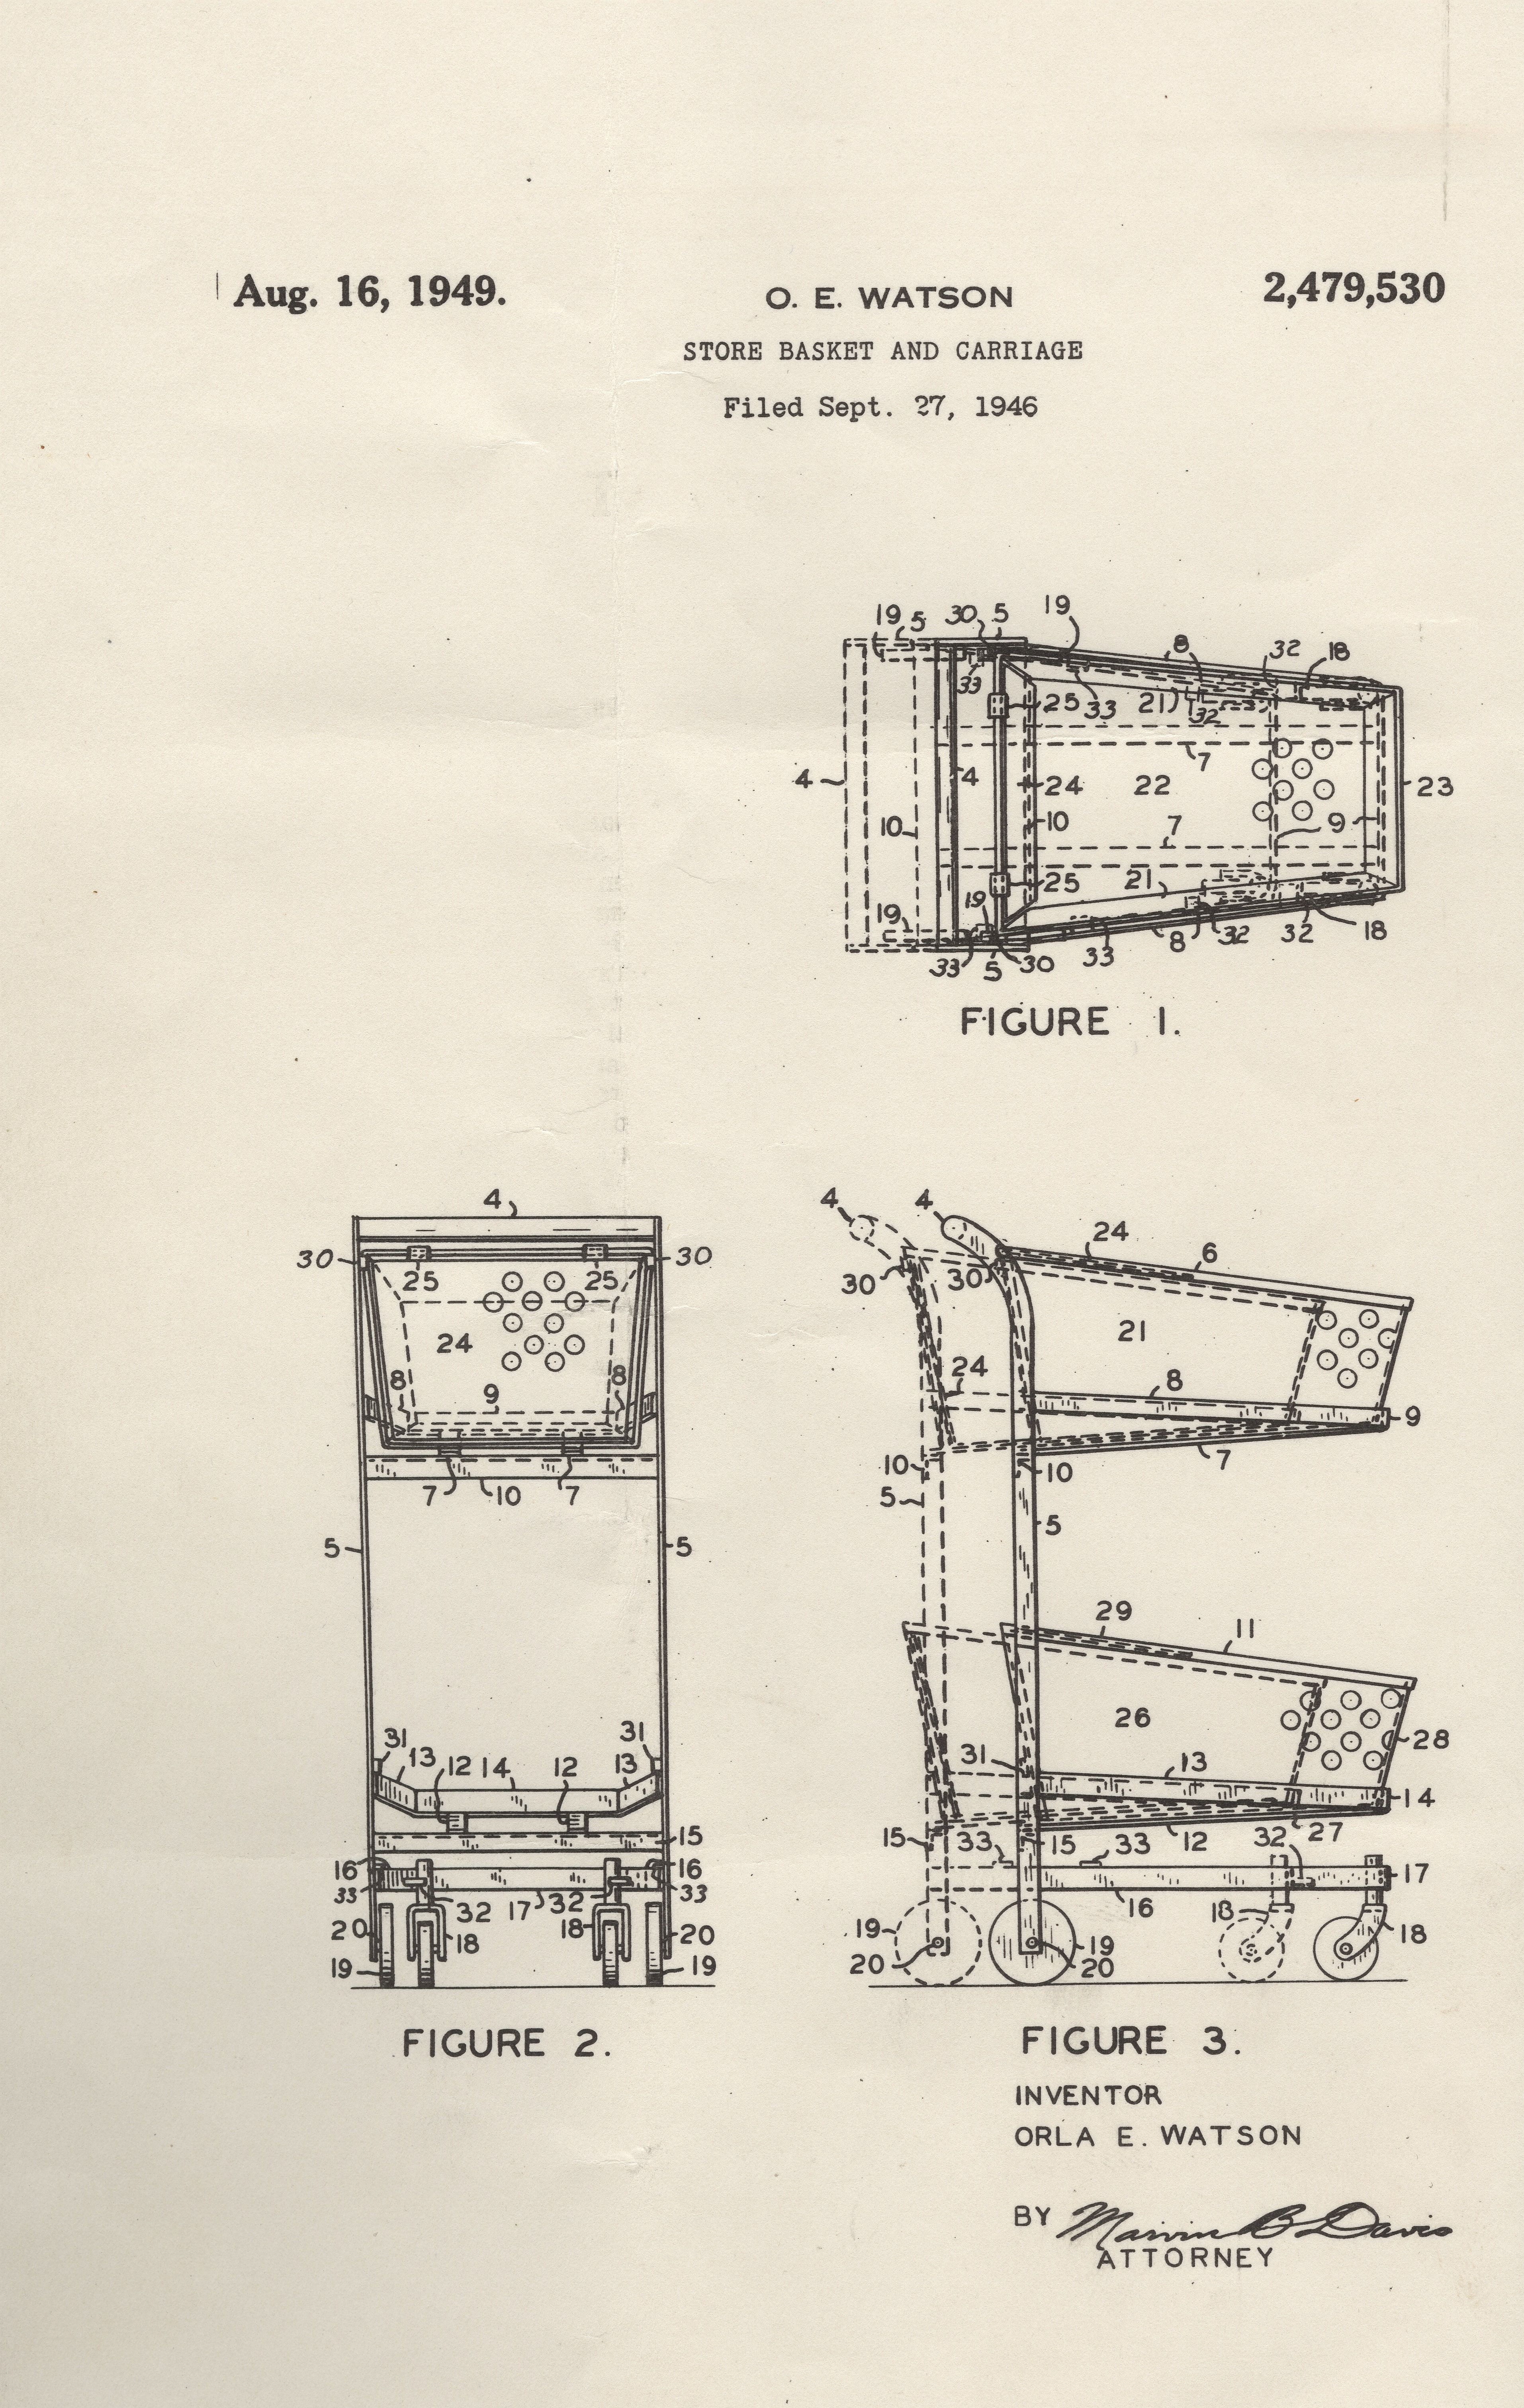 Orla Watson's Patent for the Telescoping Shopping Cart